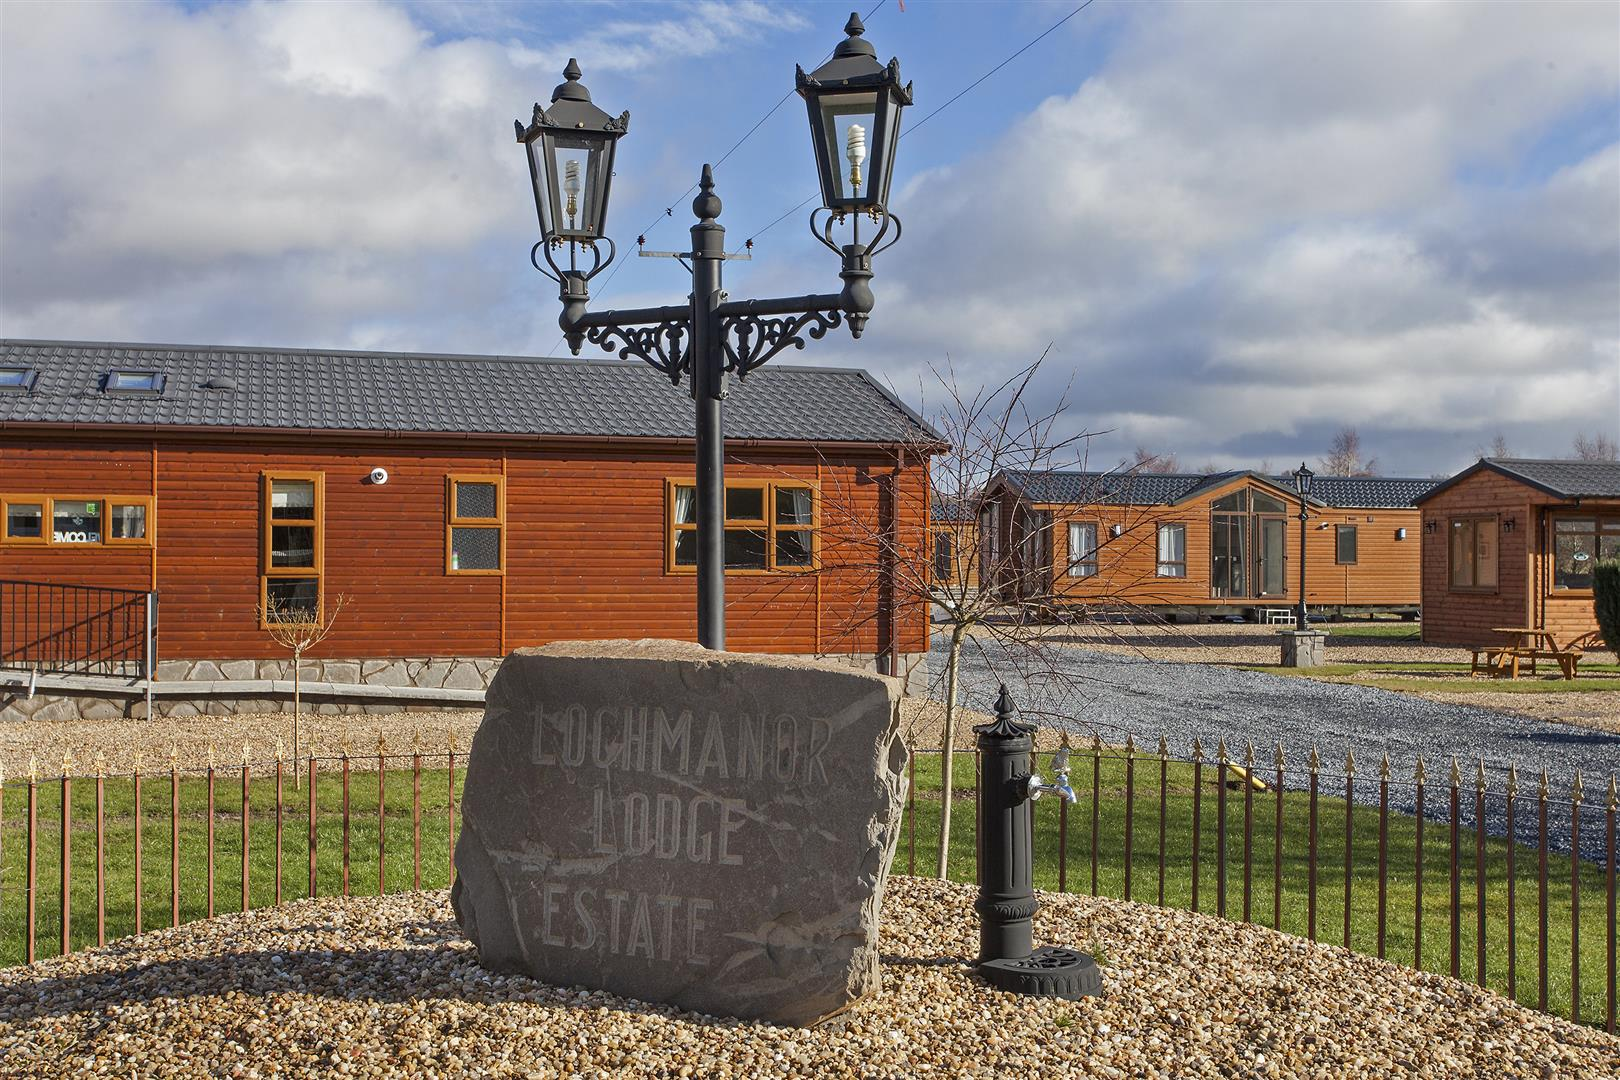 Plot 6, Atlas Lilac Lodge, Lochmanor Lodge Estate, Dunning, Dunning Perth, Perthshire, PH2 0QN, UK